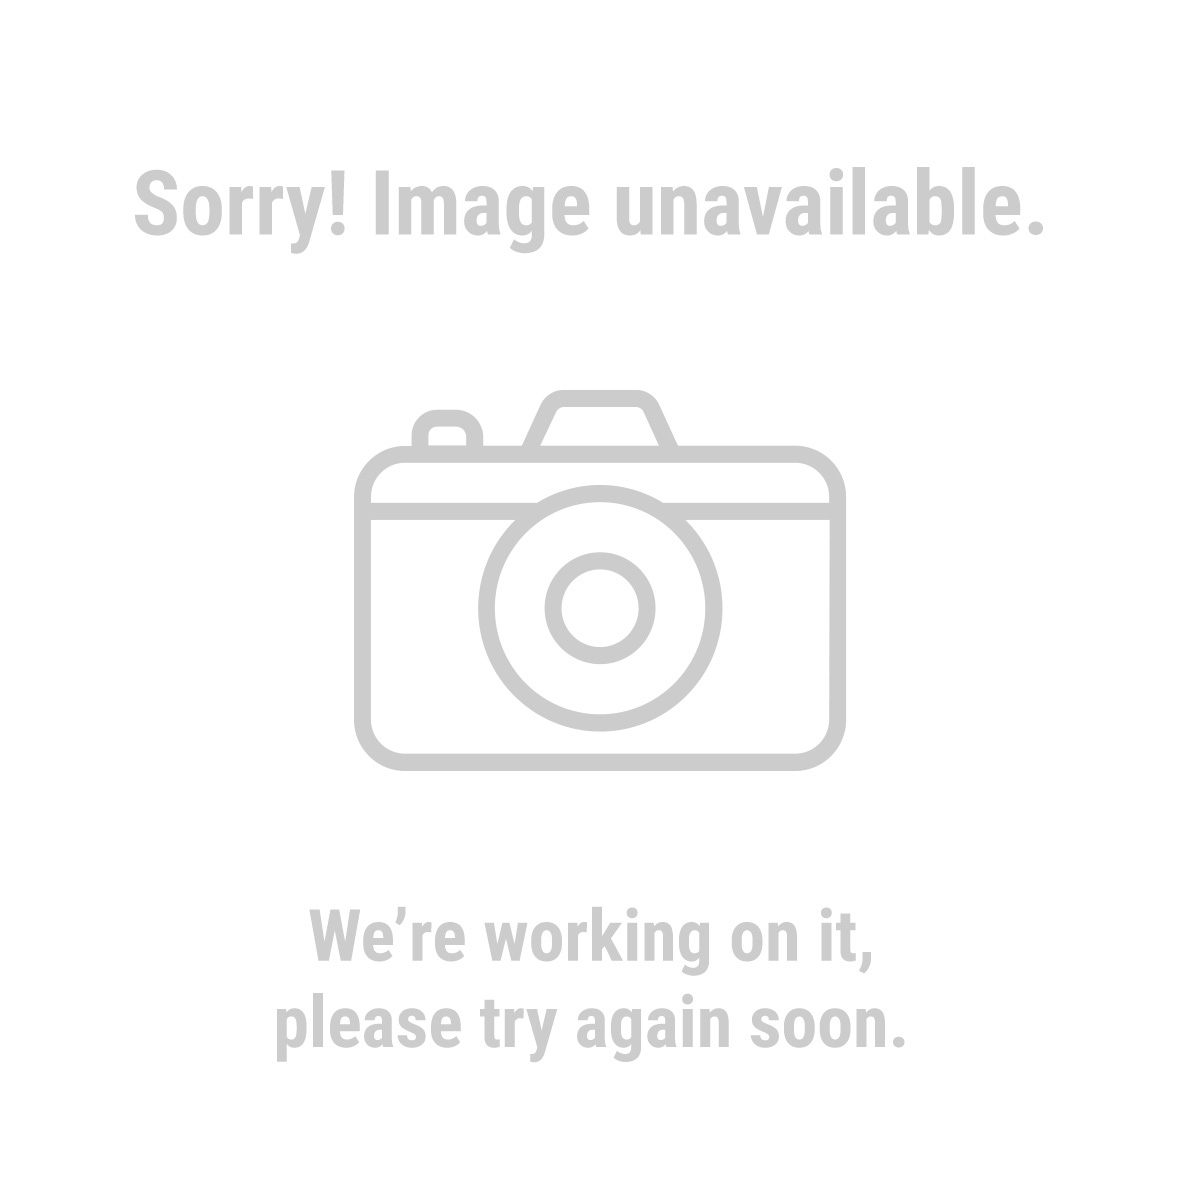 45086 55 Gallon Capacity Steel Drum Lift